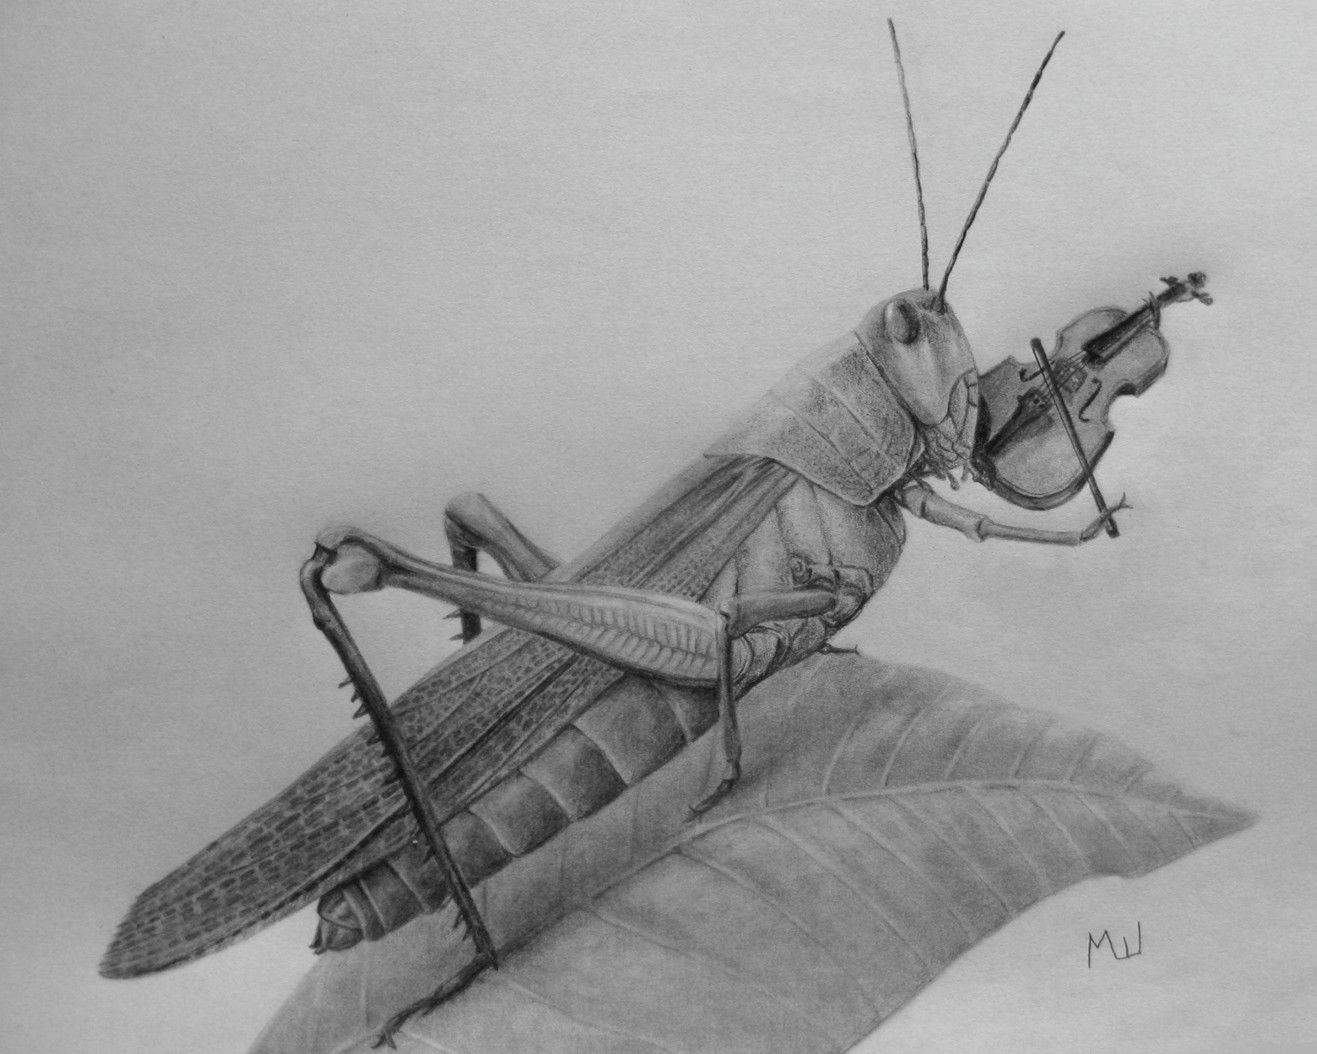 Pencil drawing of a grasshopper by miroslav sunjkic the pencil maestro pencil drawing grasshopper insects violin maestro